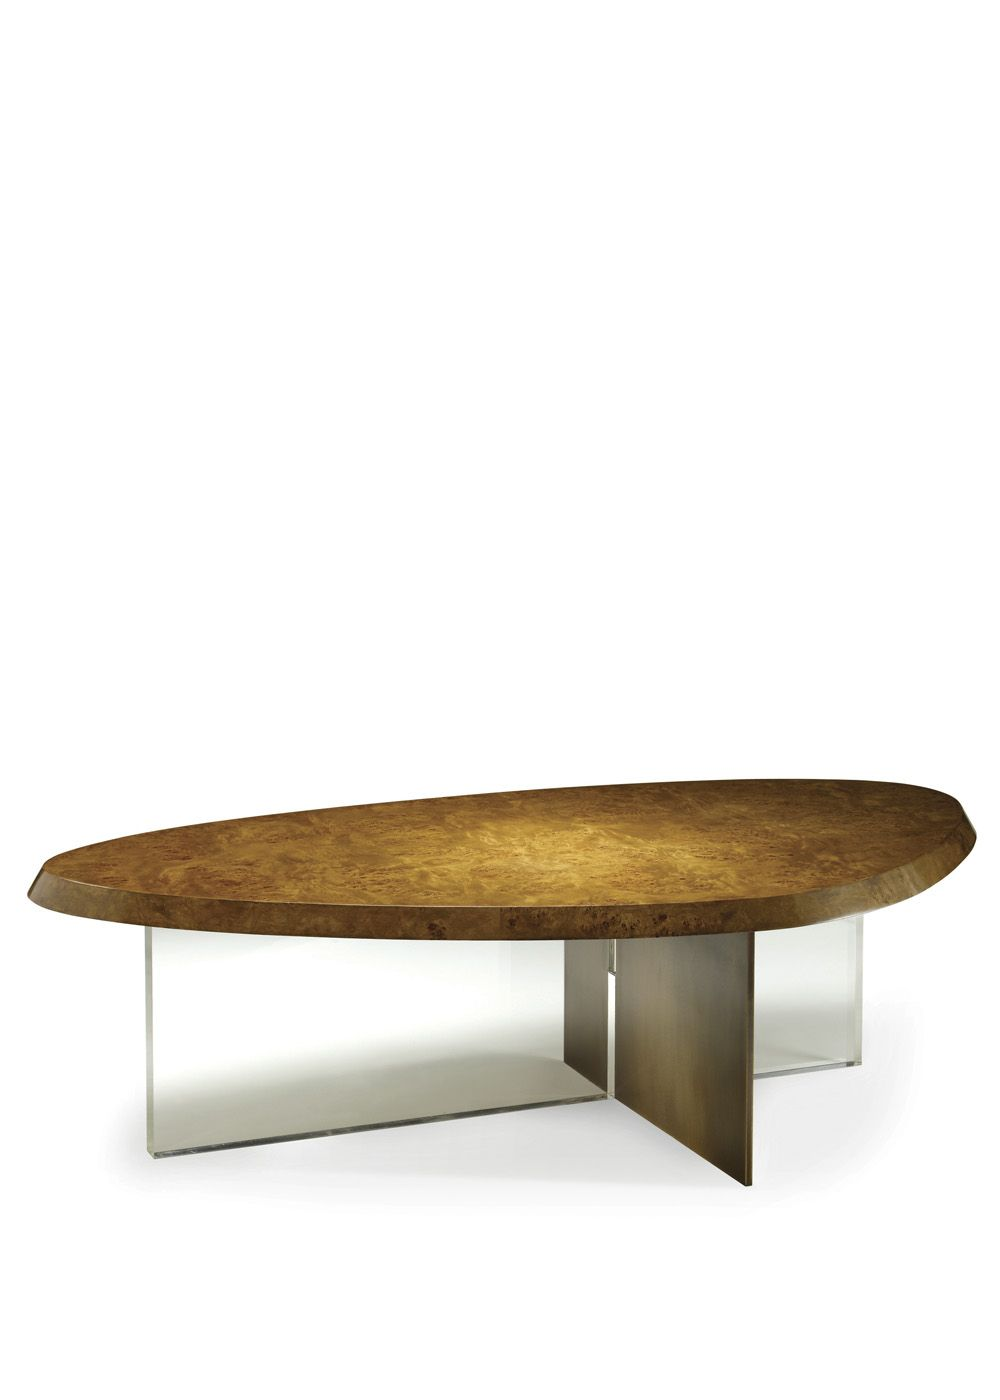 At The Table Or On The Table Coffee Table Furniture Coffee Table Table Furniture